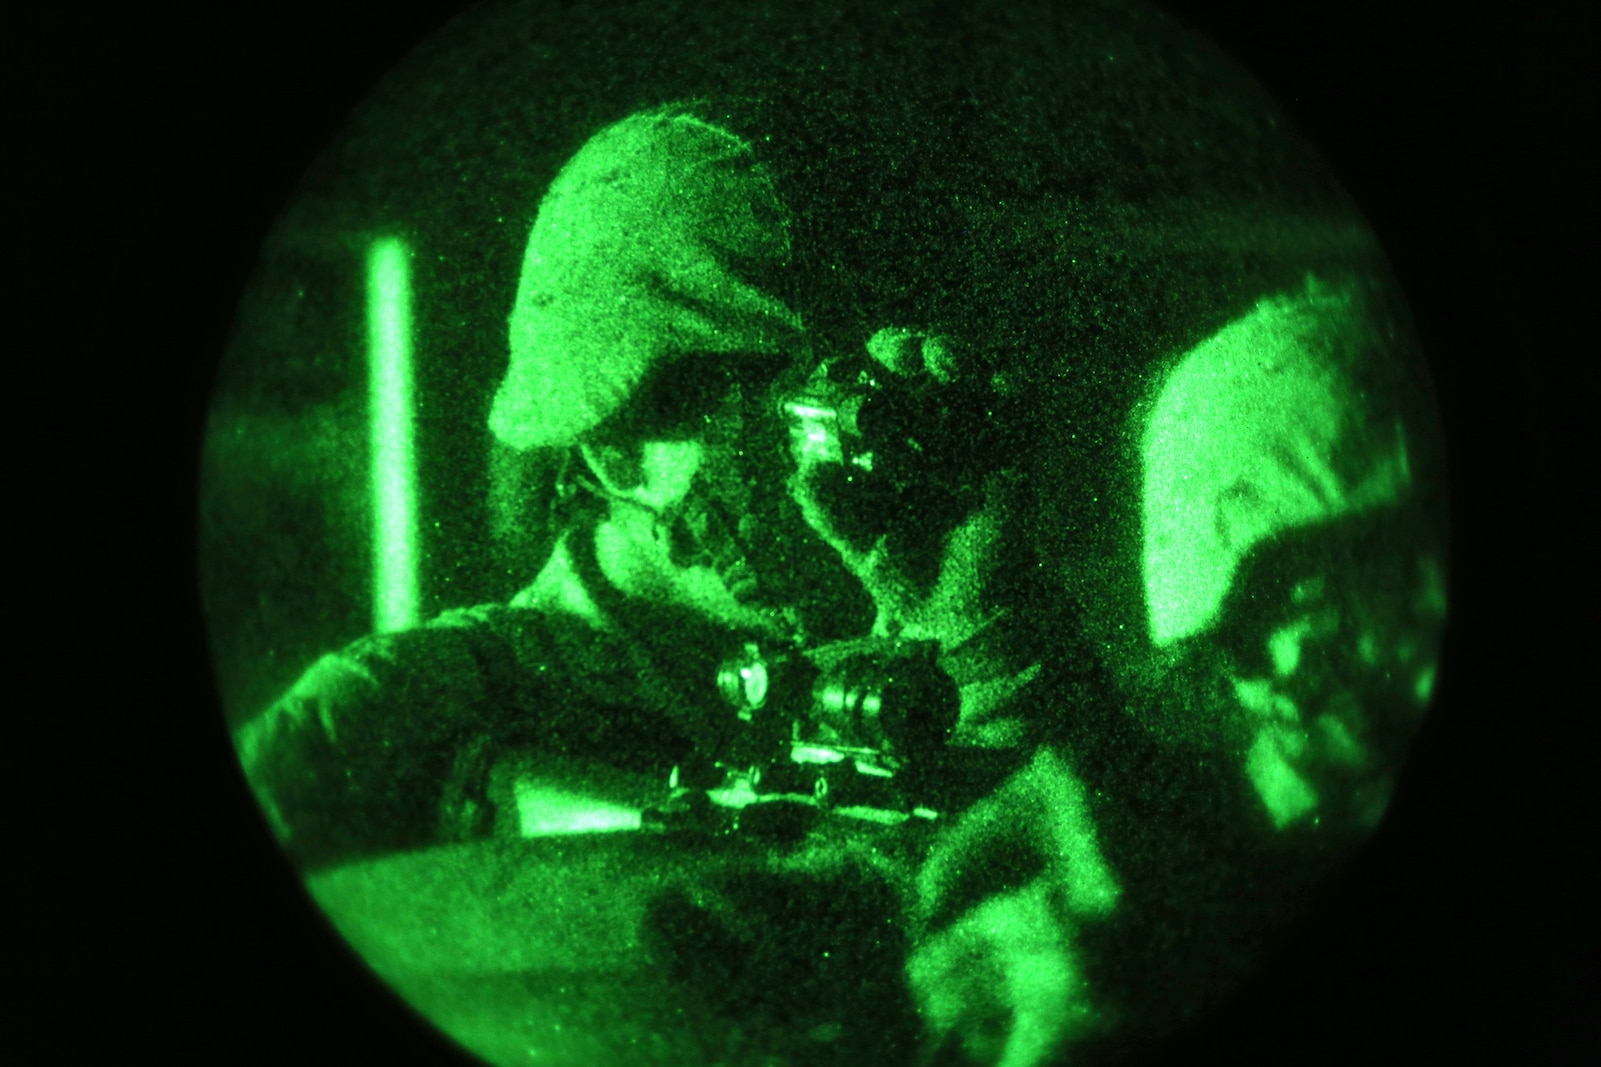 A Marine from Combat Logistics Battalion 1, Combat Logistics Regiment 1, 1st Marine Logistics Group, uses a night vision optic while on guard during the Marine Readiness Exercise aboard Marine Corps Air Ground Combat Center Twenty-nine Palms, Calif., March 25, 2014. The MRX is part of the month-long Integrated Training Exercise 3-14 that prepares the battalion for its role as the logistics combat element in the final combat deployment in support of Operation Enduring Freedom.